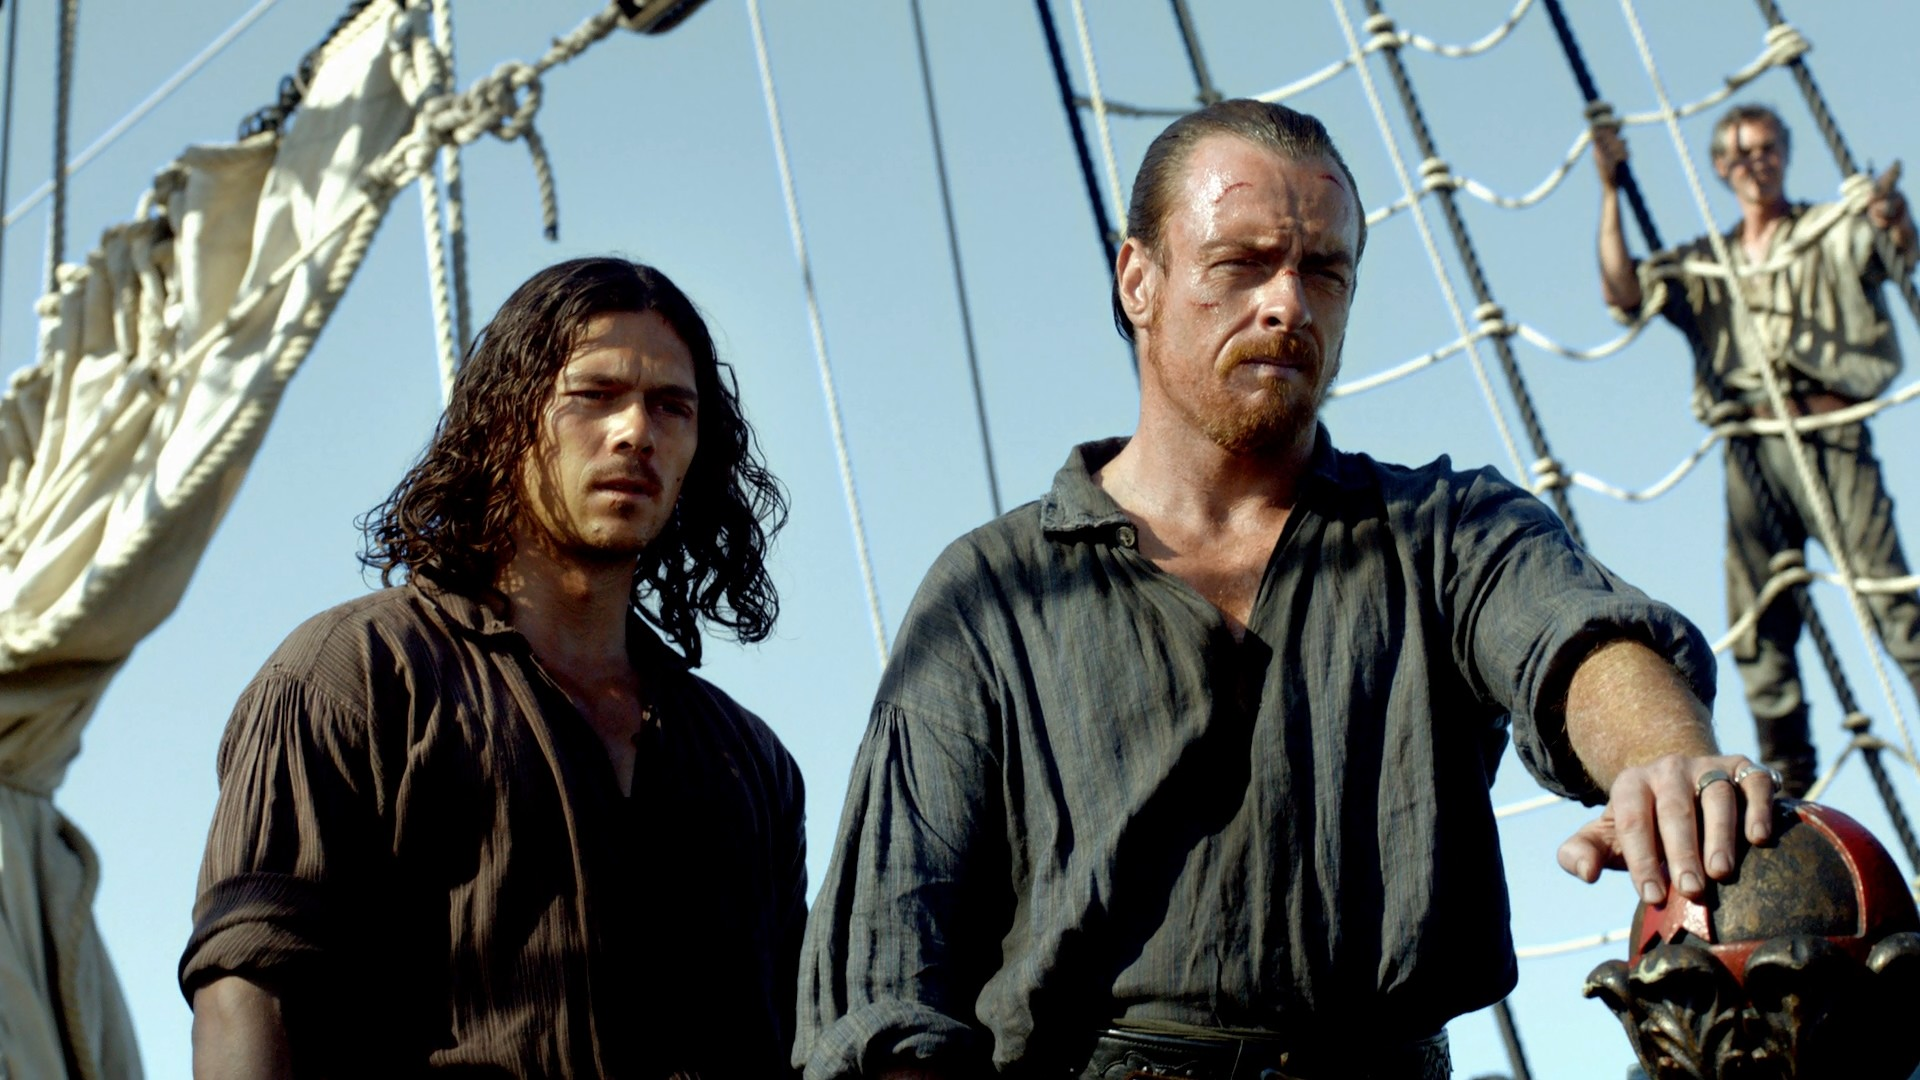 The Video: Sizing Up the Picture. 'Black Sails' …